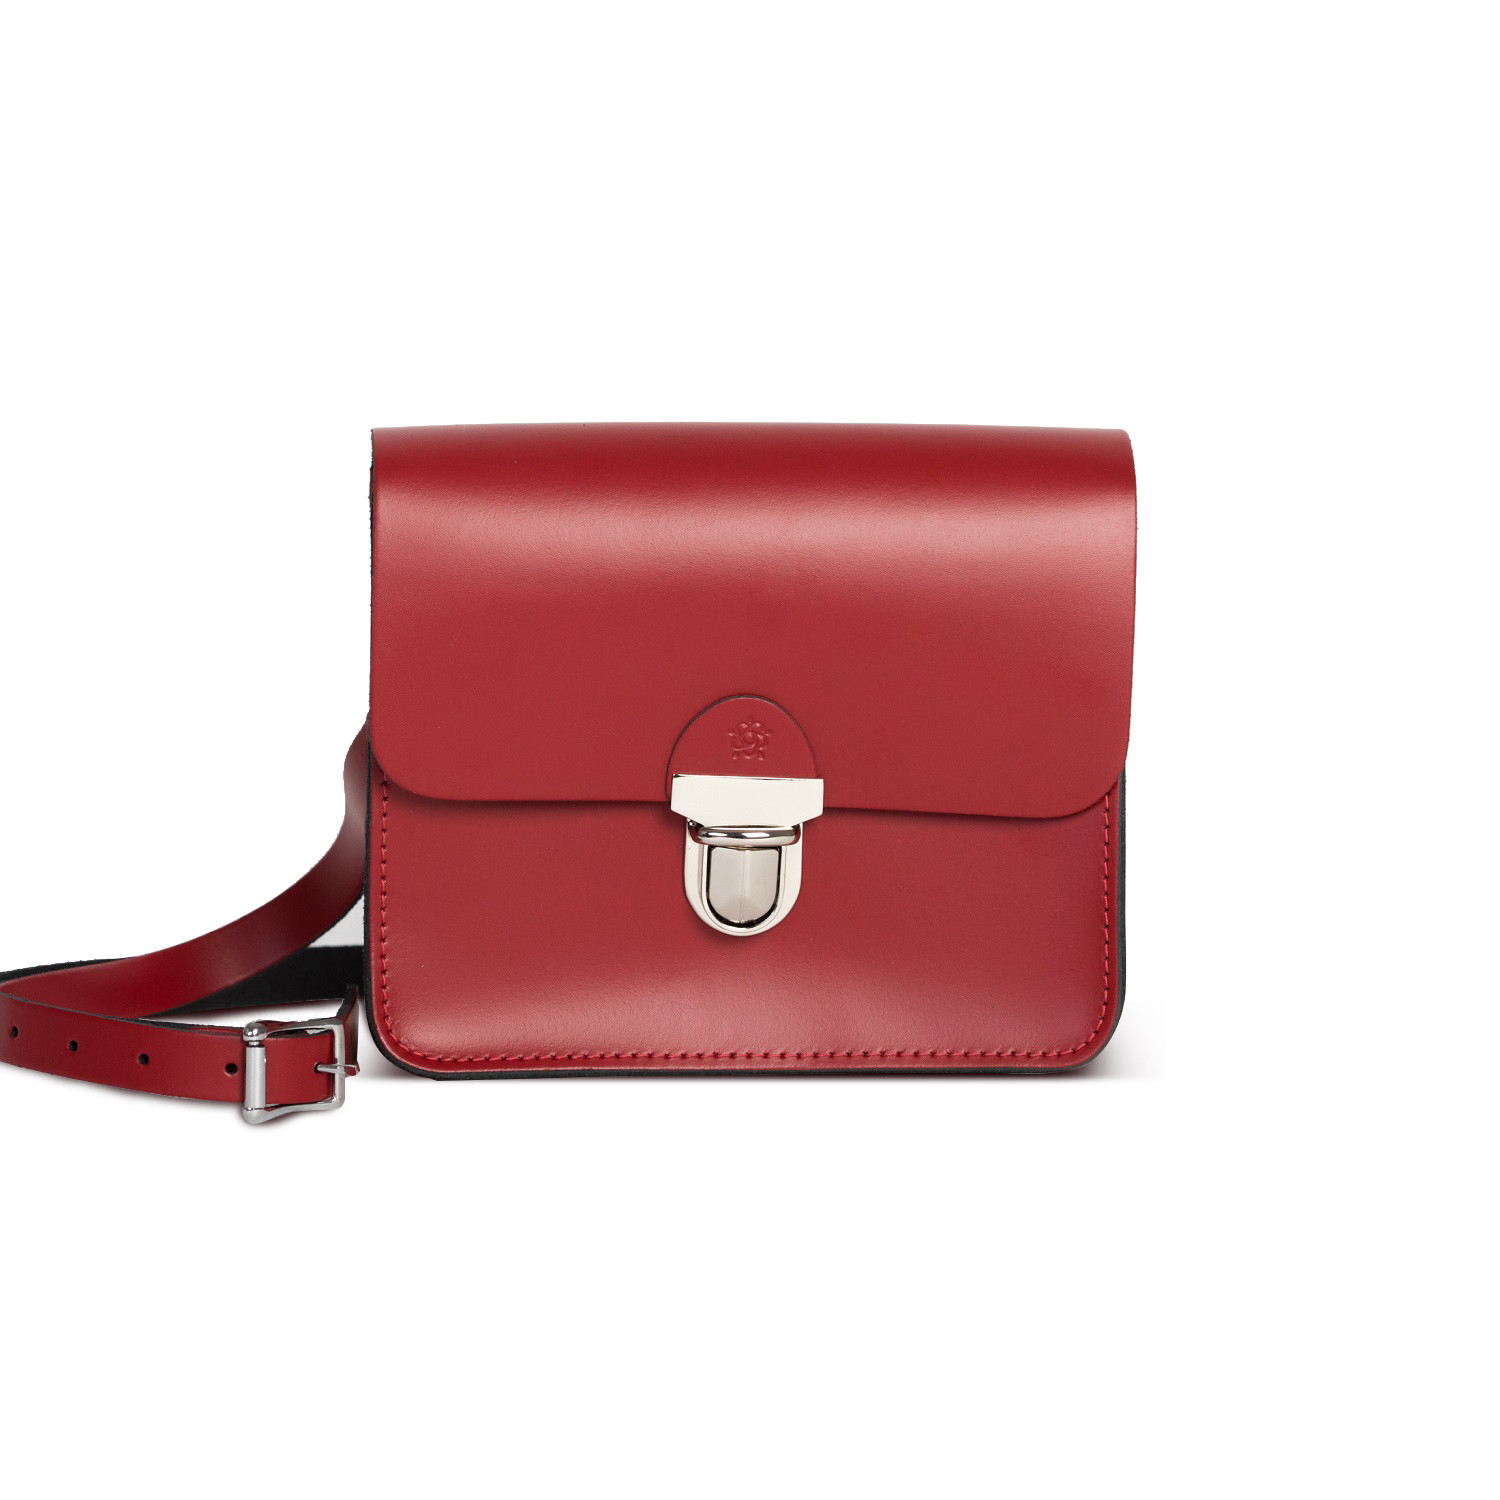 Sofia Premium Leather Crossbody Bag in Scarlet Red